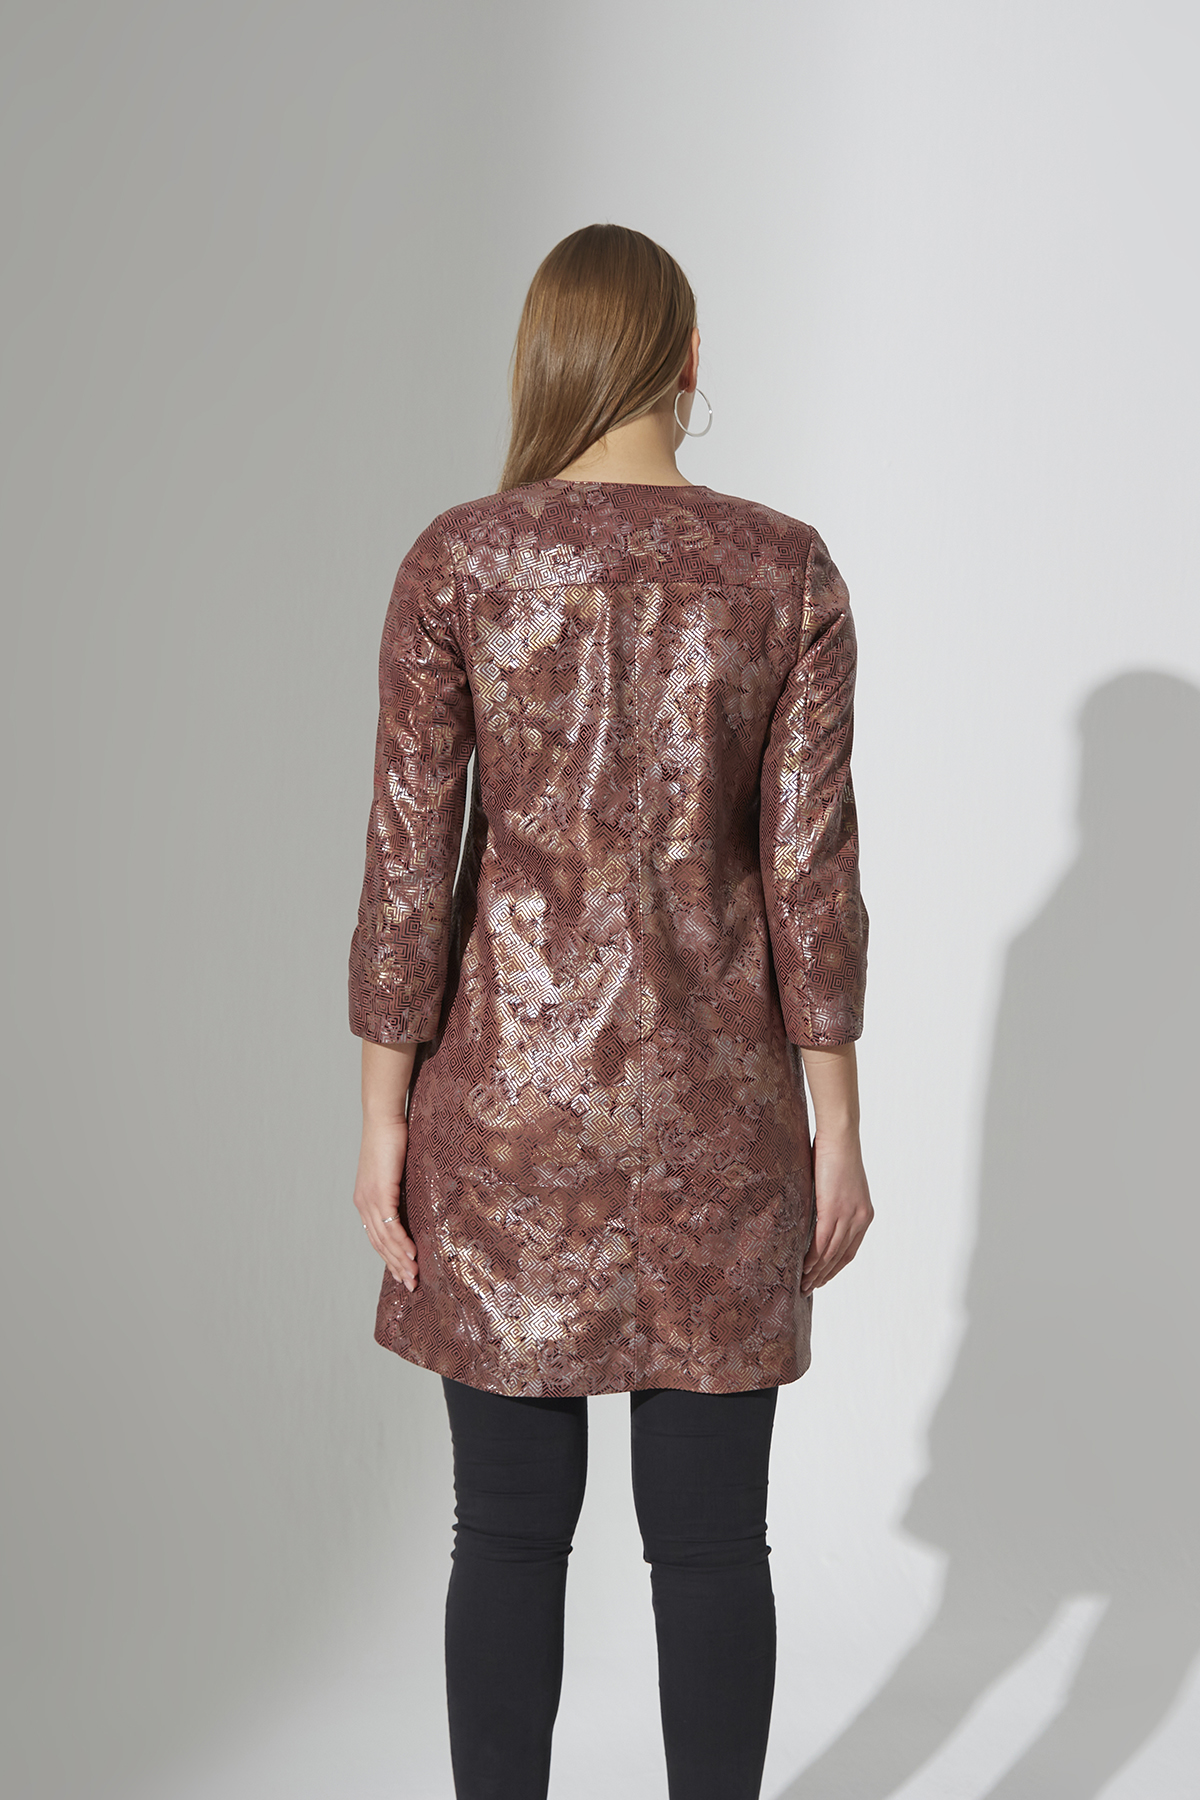 IPAW5197 Flower Printed Leather Jacket